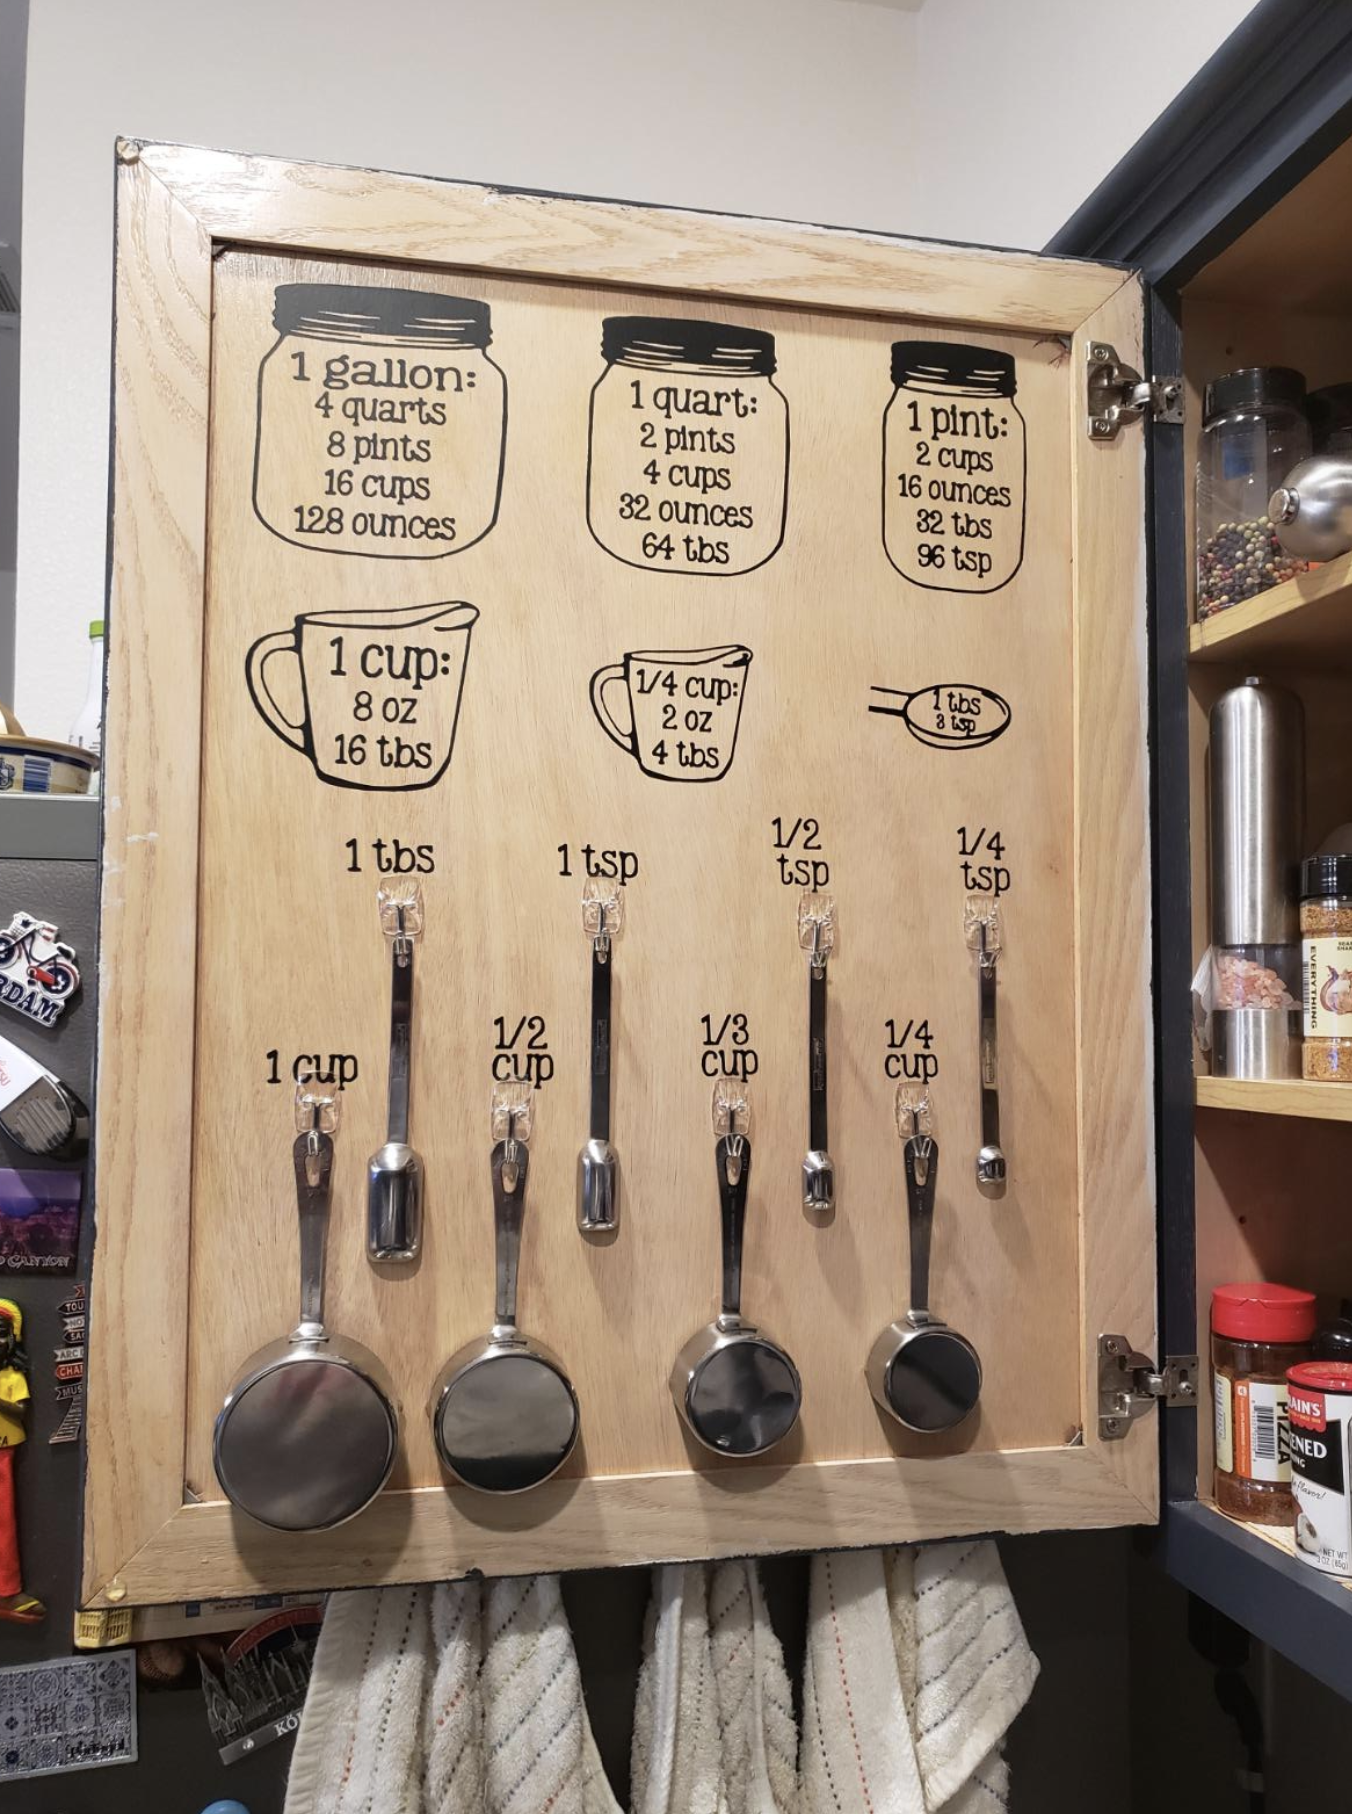 Reviewer image of measurement decals pasted inside a cabinet with measuring cups underneath, and six measurement conversions (gallon, quart, pint, cup, 1/4 cup, and one tablesoon)